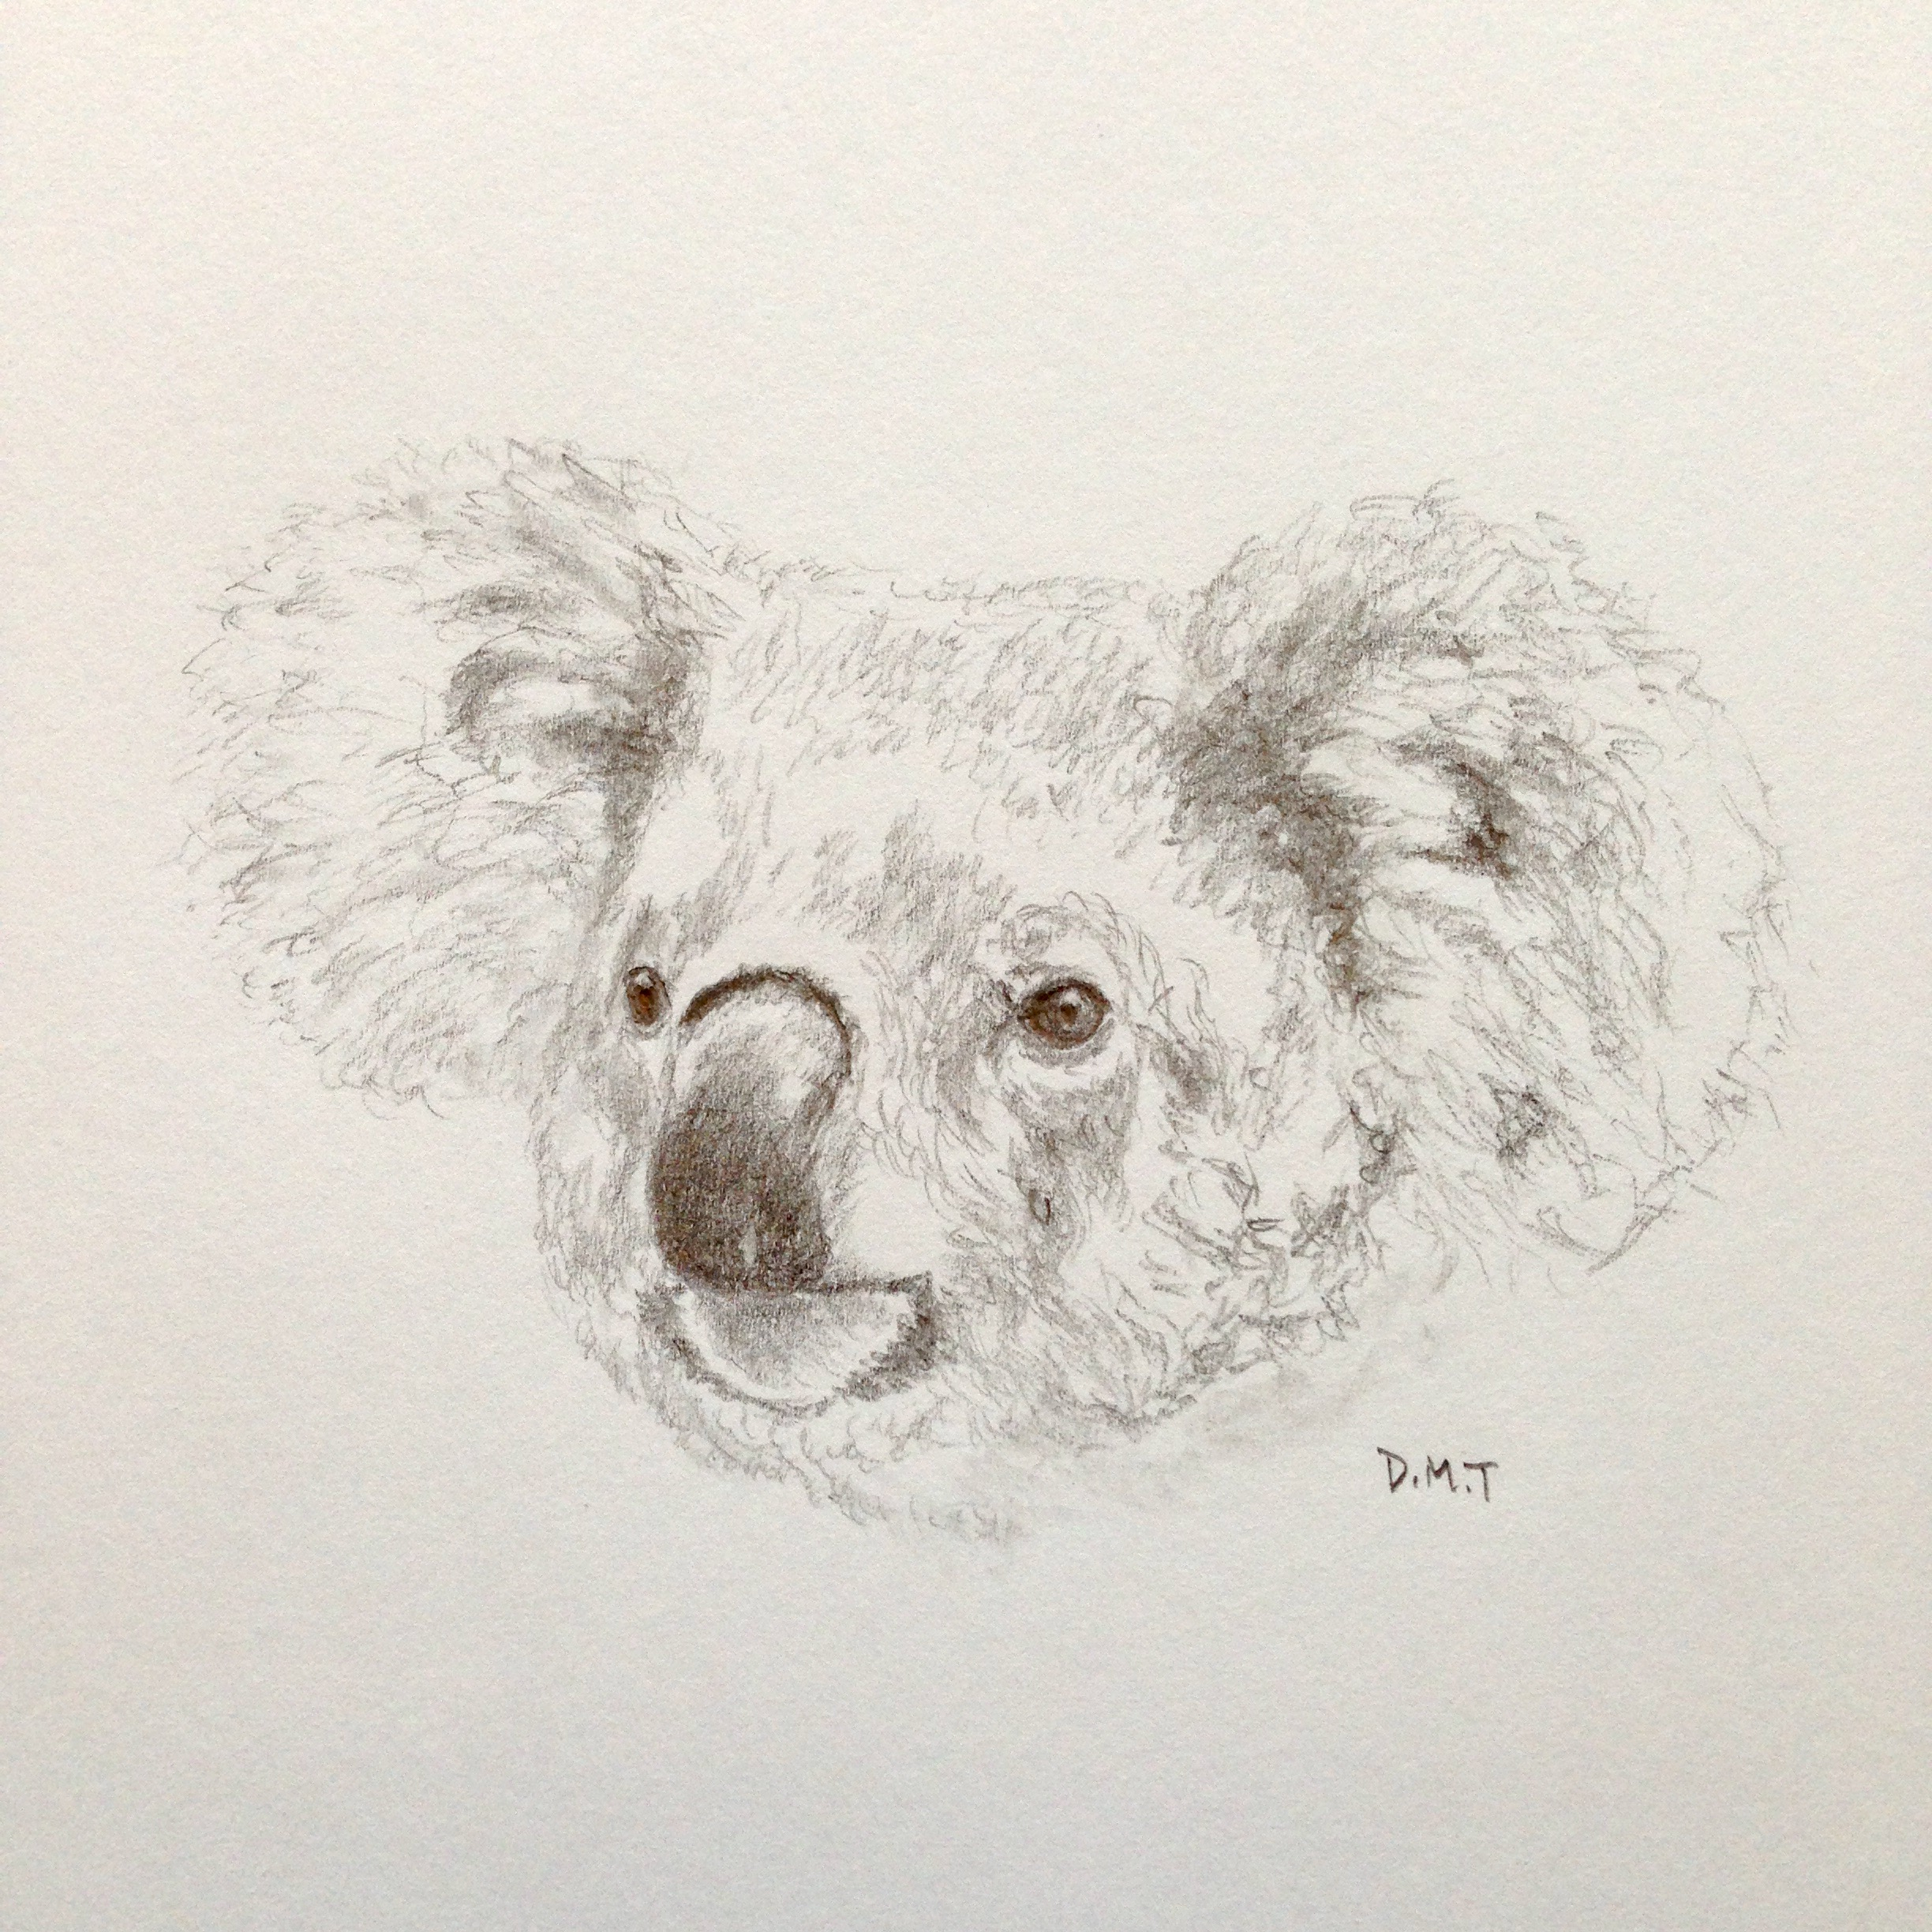 Pencil drawing of a koala